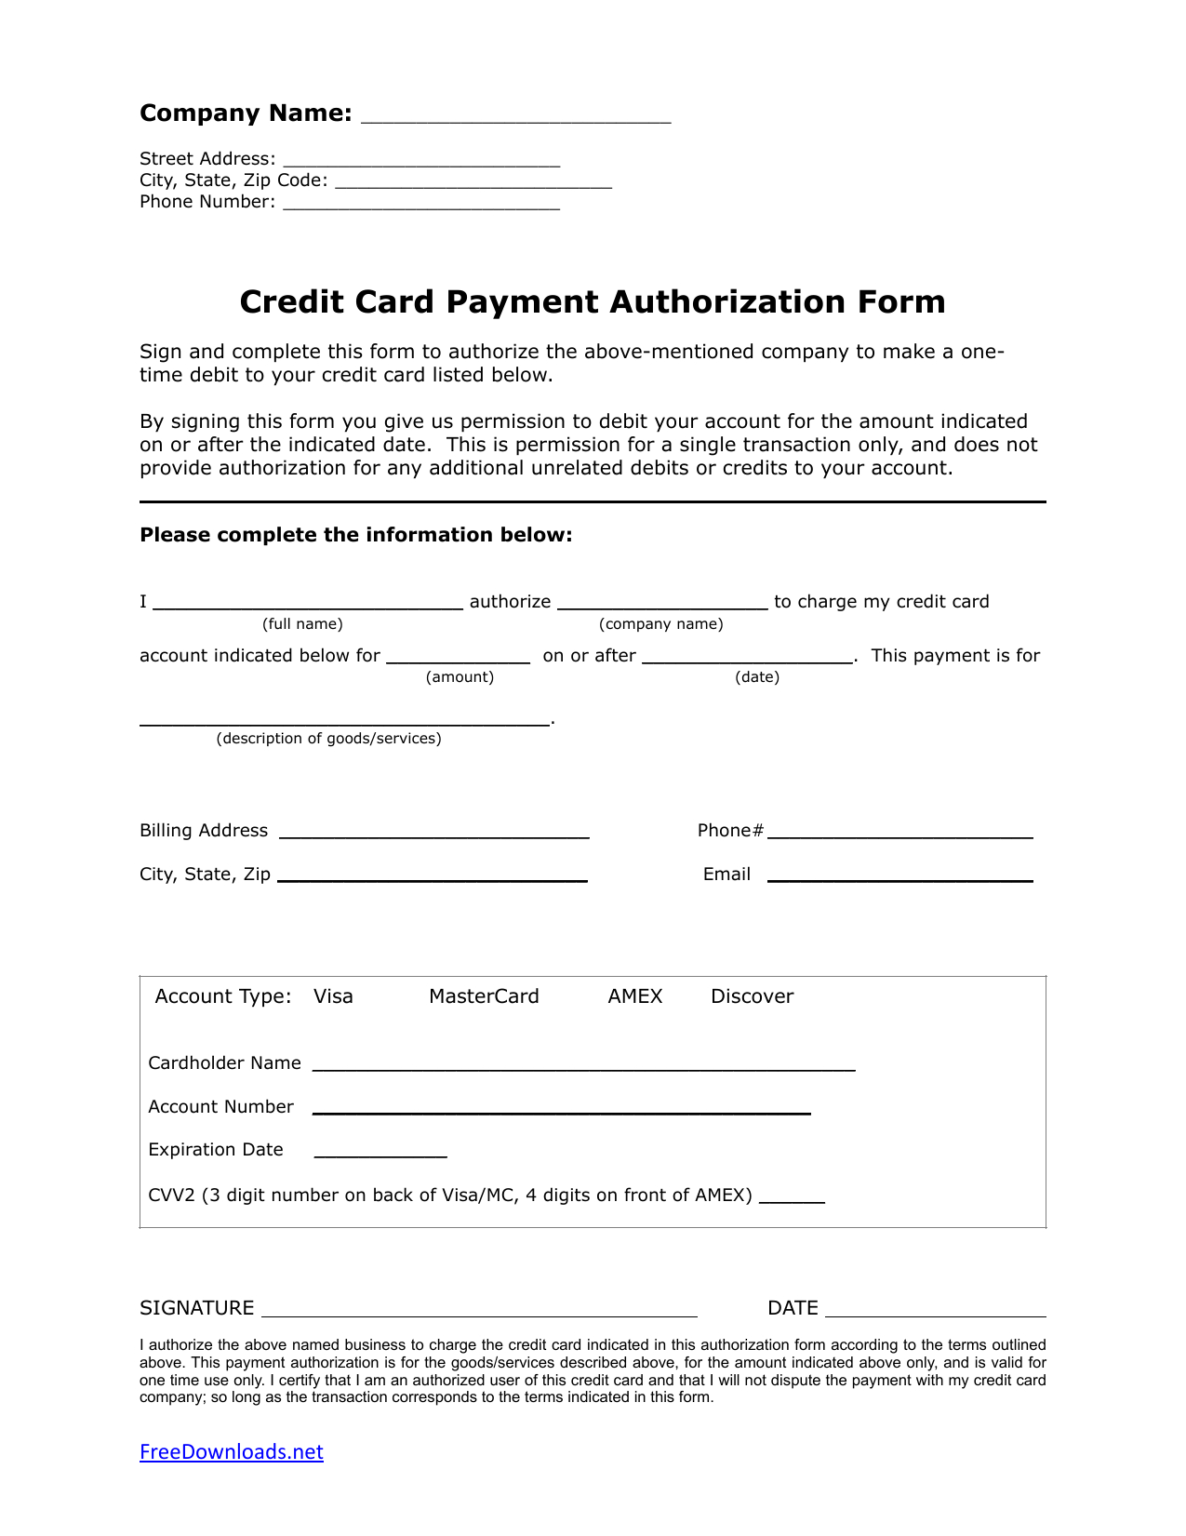 Download One 1 Time Credit Card Authorization Payment Form In Credit Card Authorization Form Template Word Credit Card Payment Credit Card Card Template